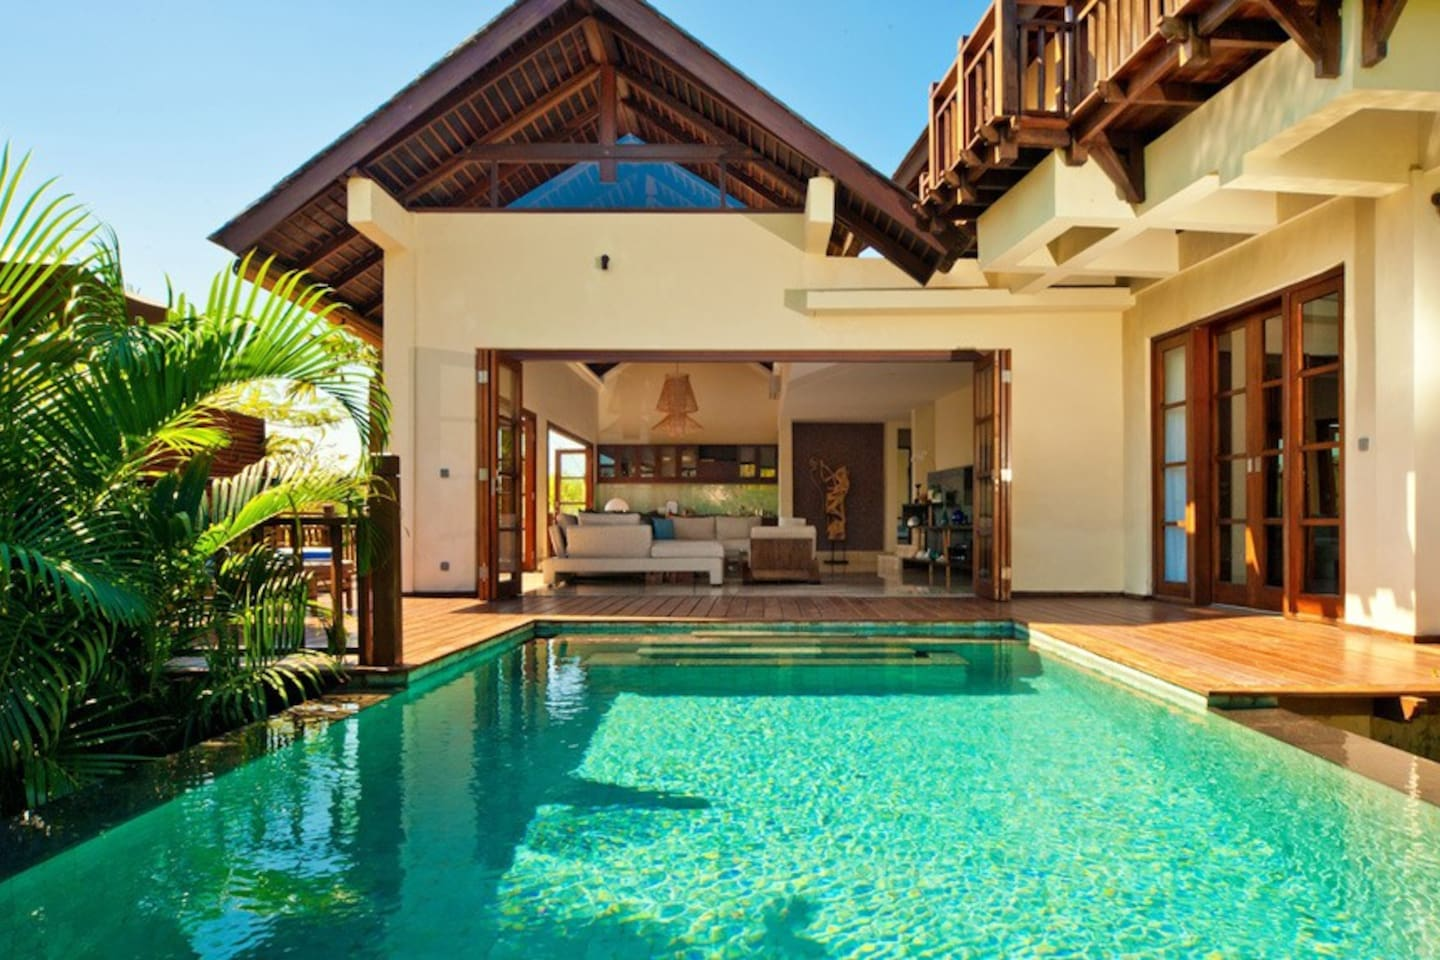 Villa Karma Manis' private pool with surrounded wooden deck